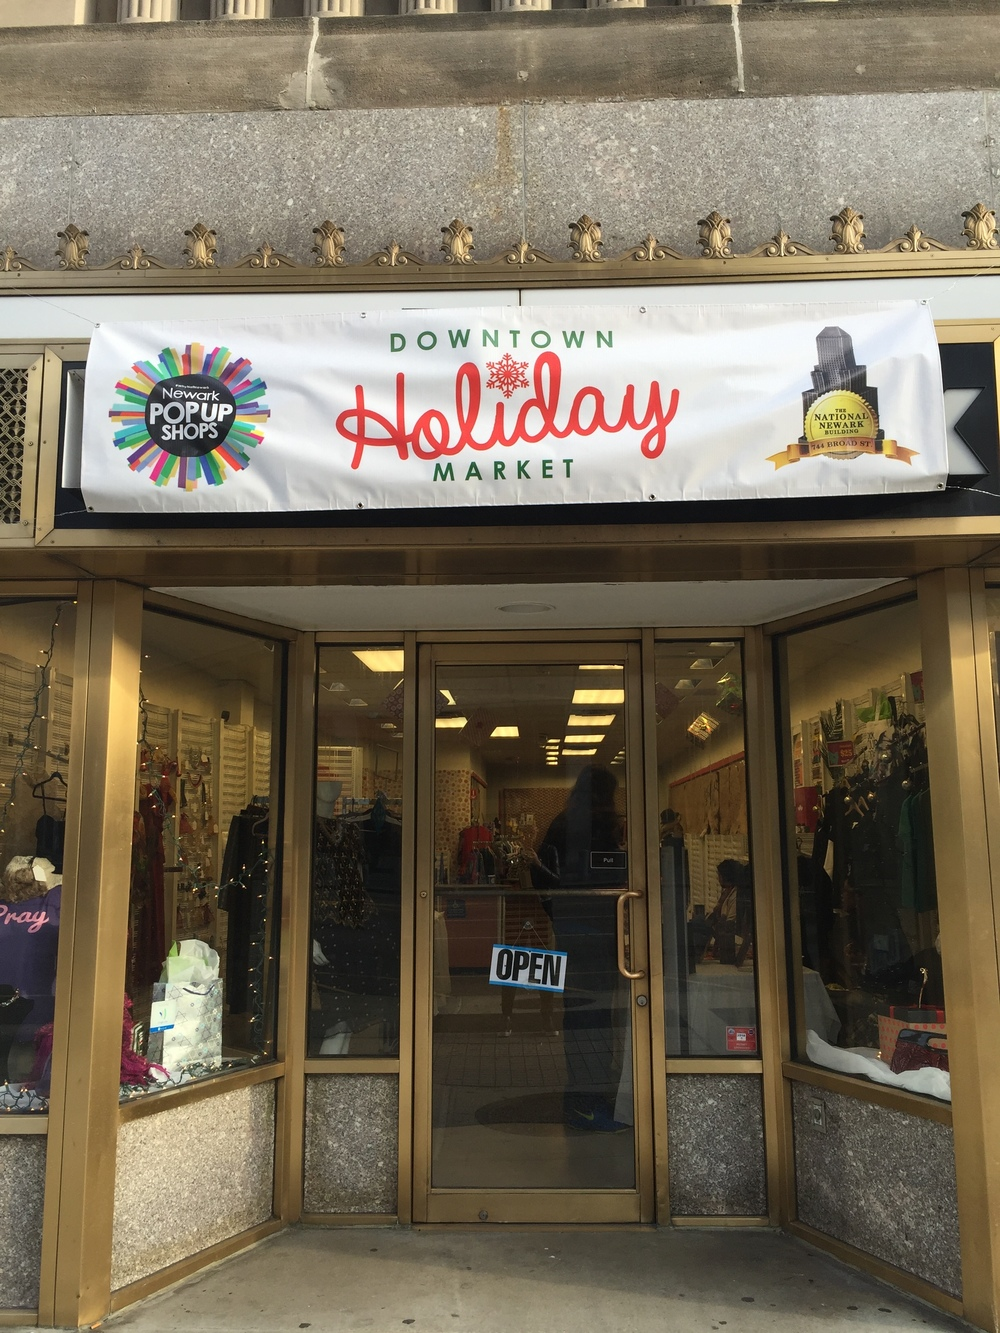 Downtown Holiday Market  presented by Newark Pop-Up Shops located at 744 Broad Street Newark, NJ.